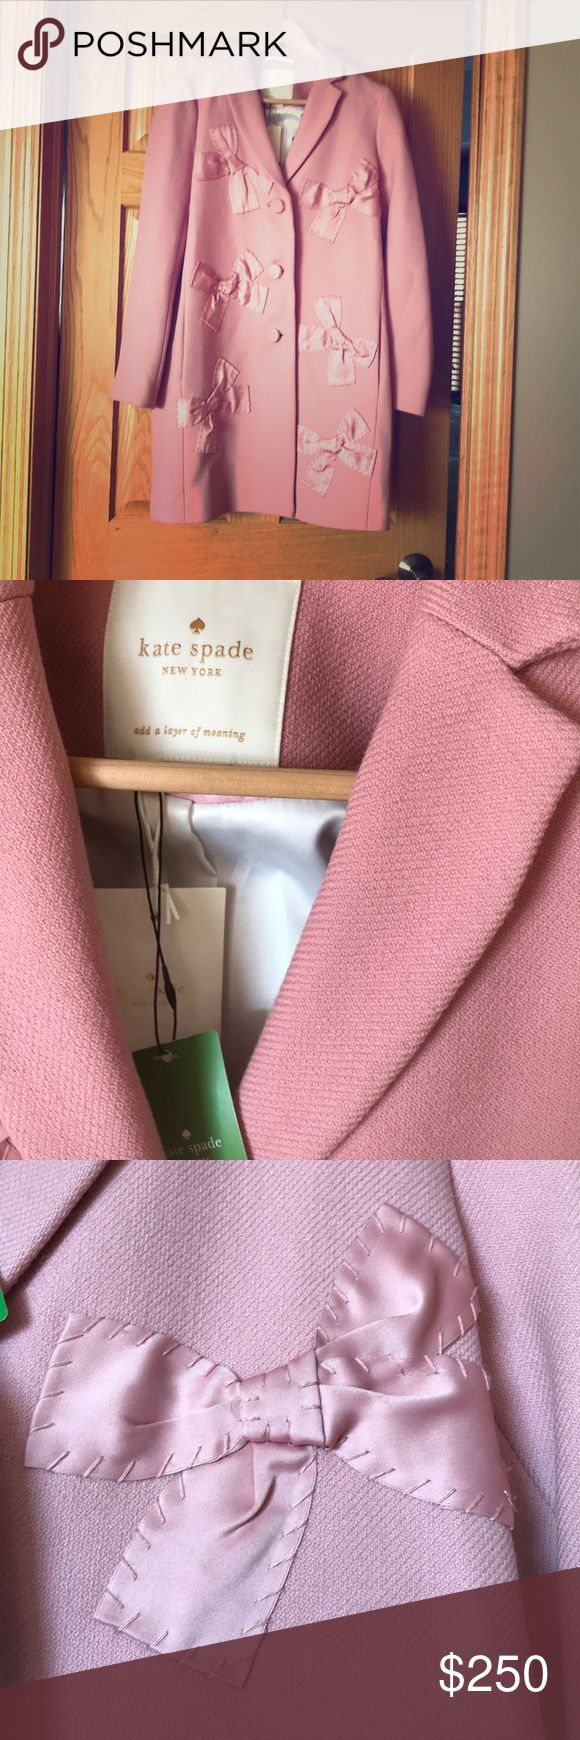 """Kate Spade ♠️ NWT Pink bow wool coat jacket Absolutely fun Kate Spade pink 3/4 length coat. This is so adorable with the bows and an amazing soft pink! It is a size 4. New with tags and extra buttons. It has a satin white interior. Gold on the pink buttons. - """"add a layer of meaning..."""" kate spade Jackets & Coats Pea Coats"""